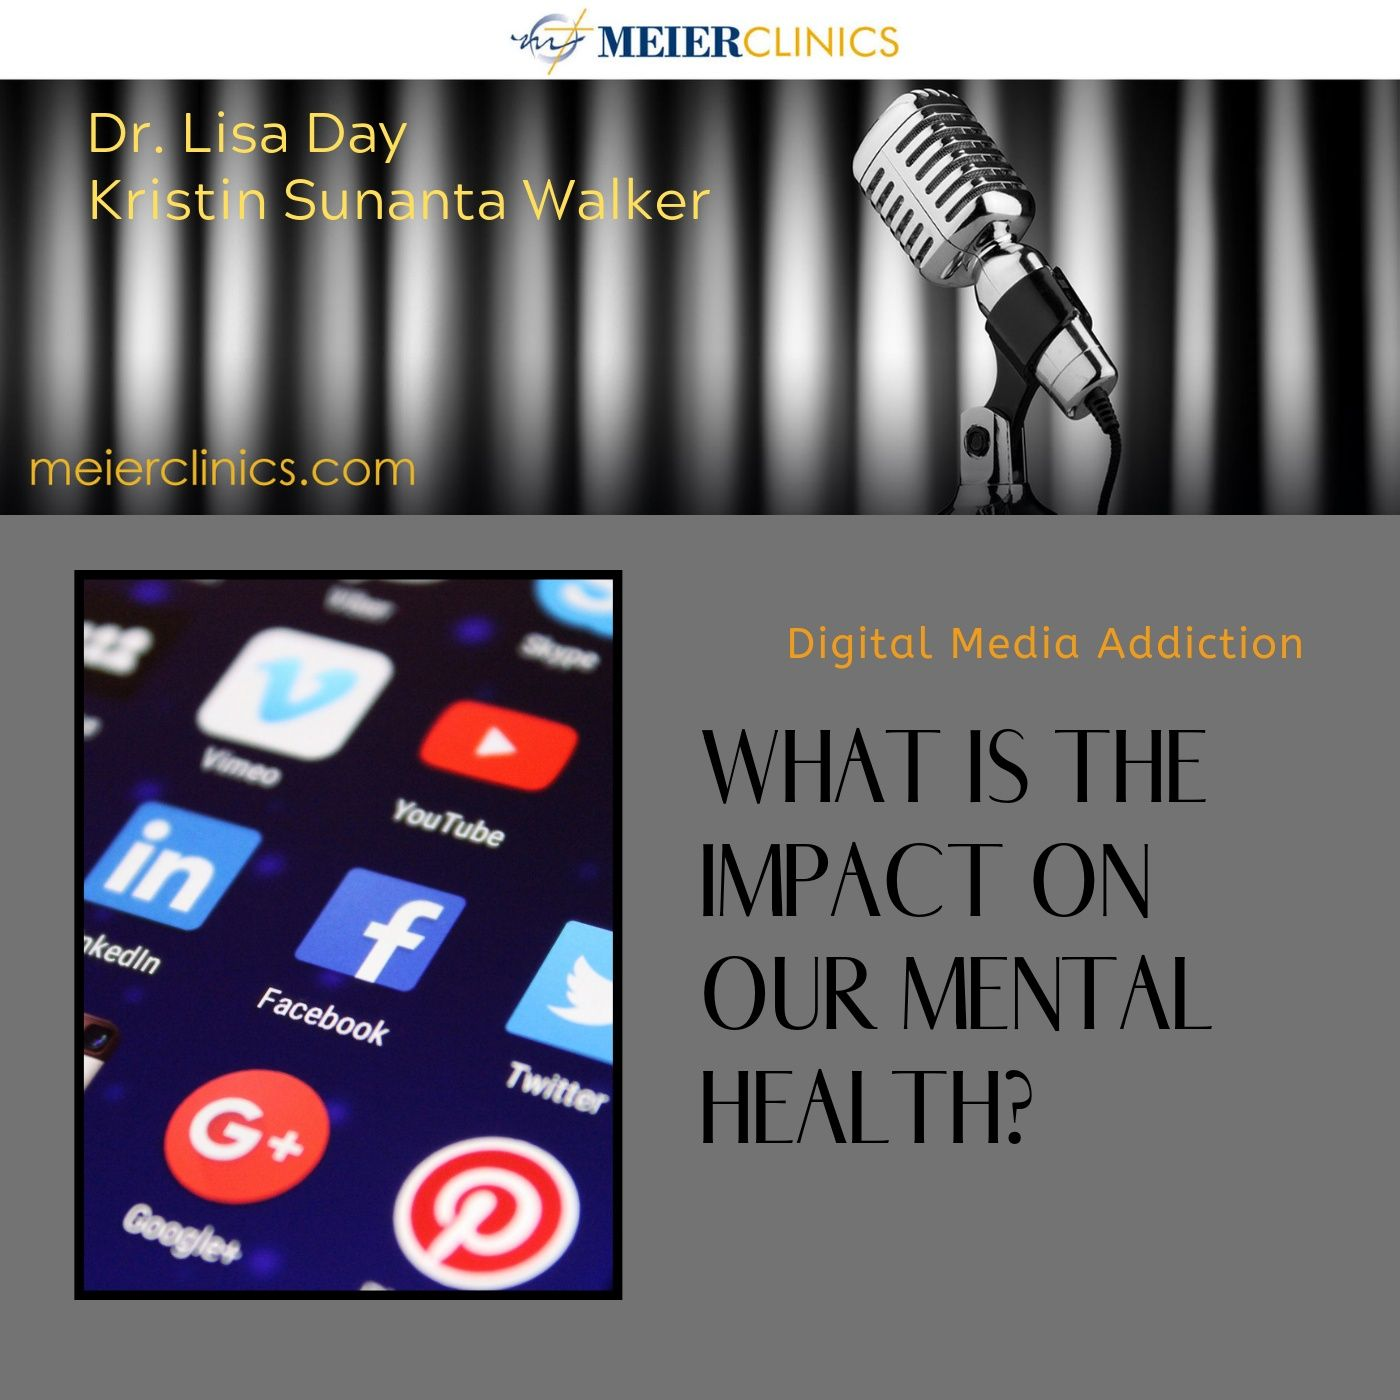 Digital Media Addiction: What Is the Impact on Mental Health?